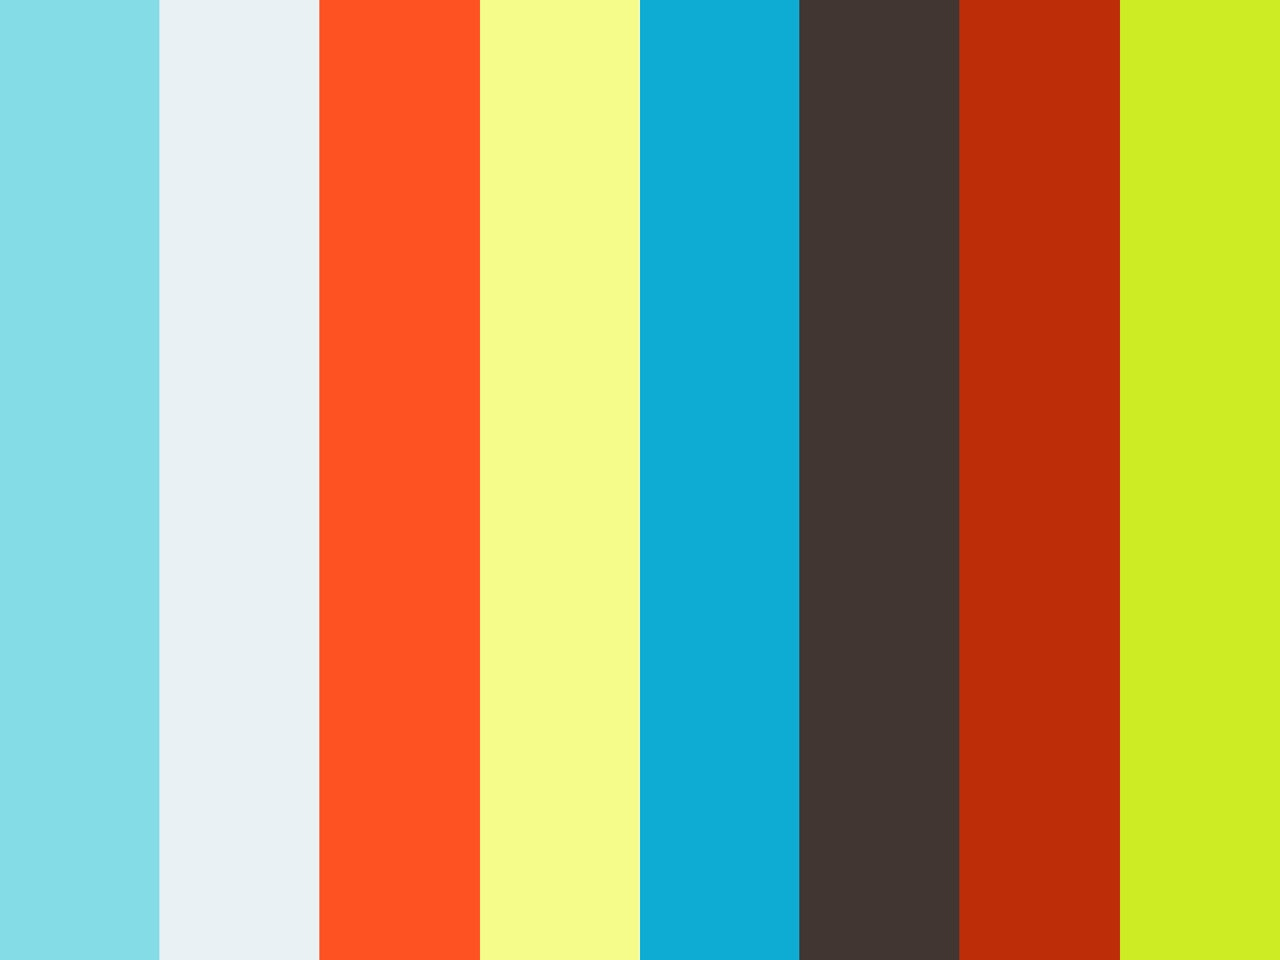 Sea lions at Pier 39 in SF